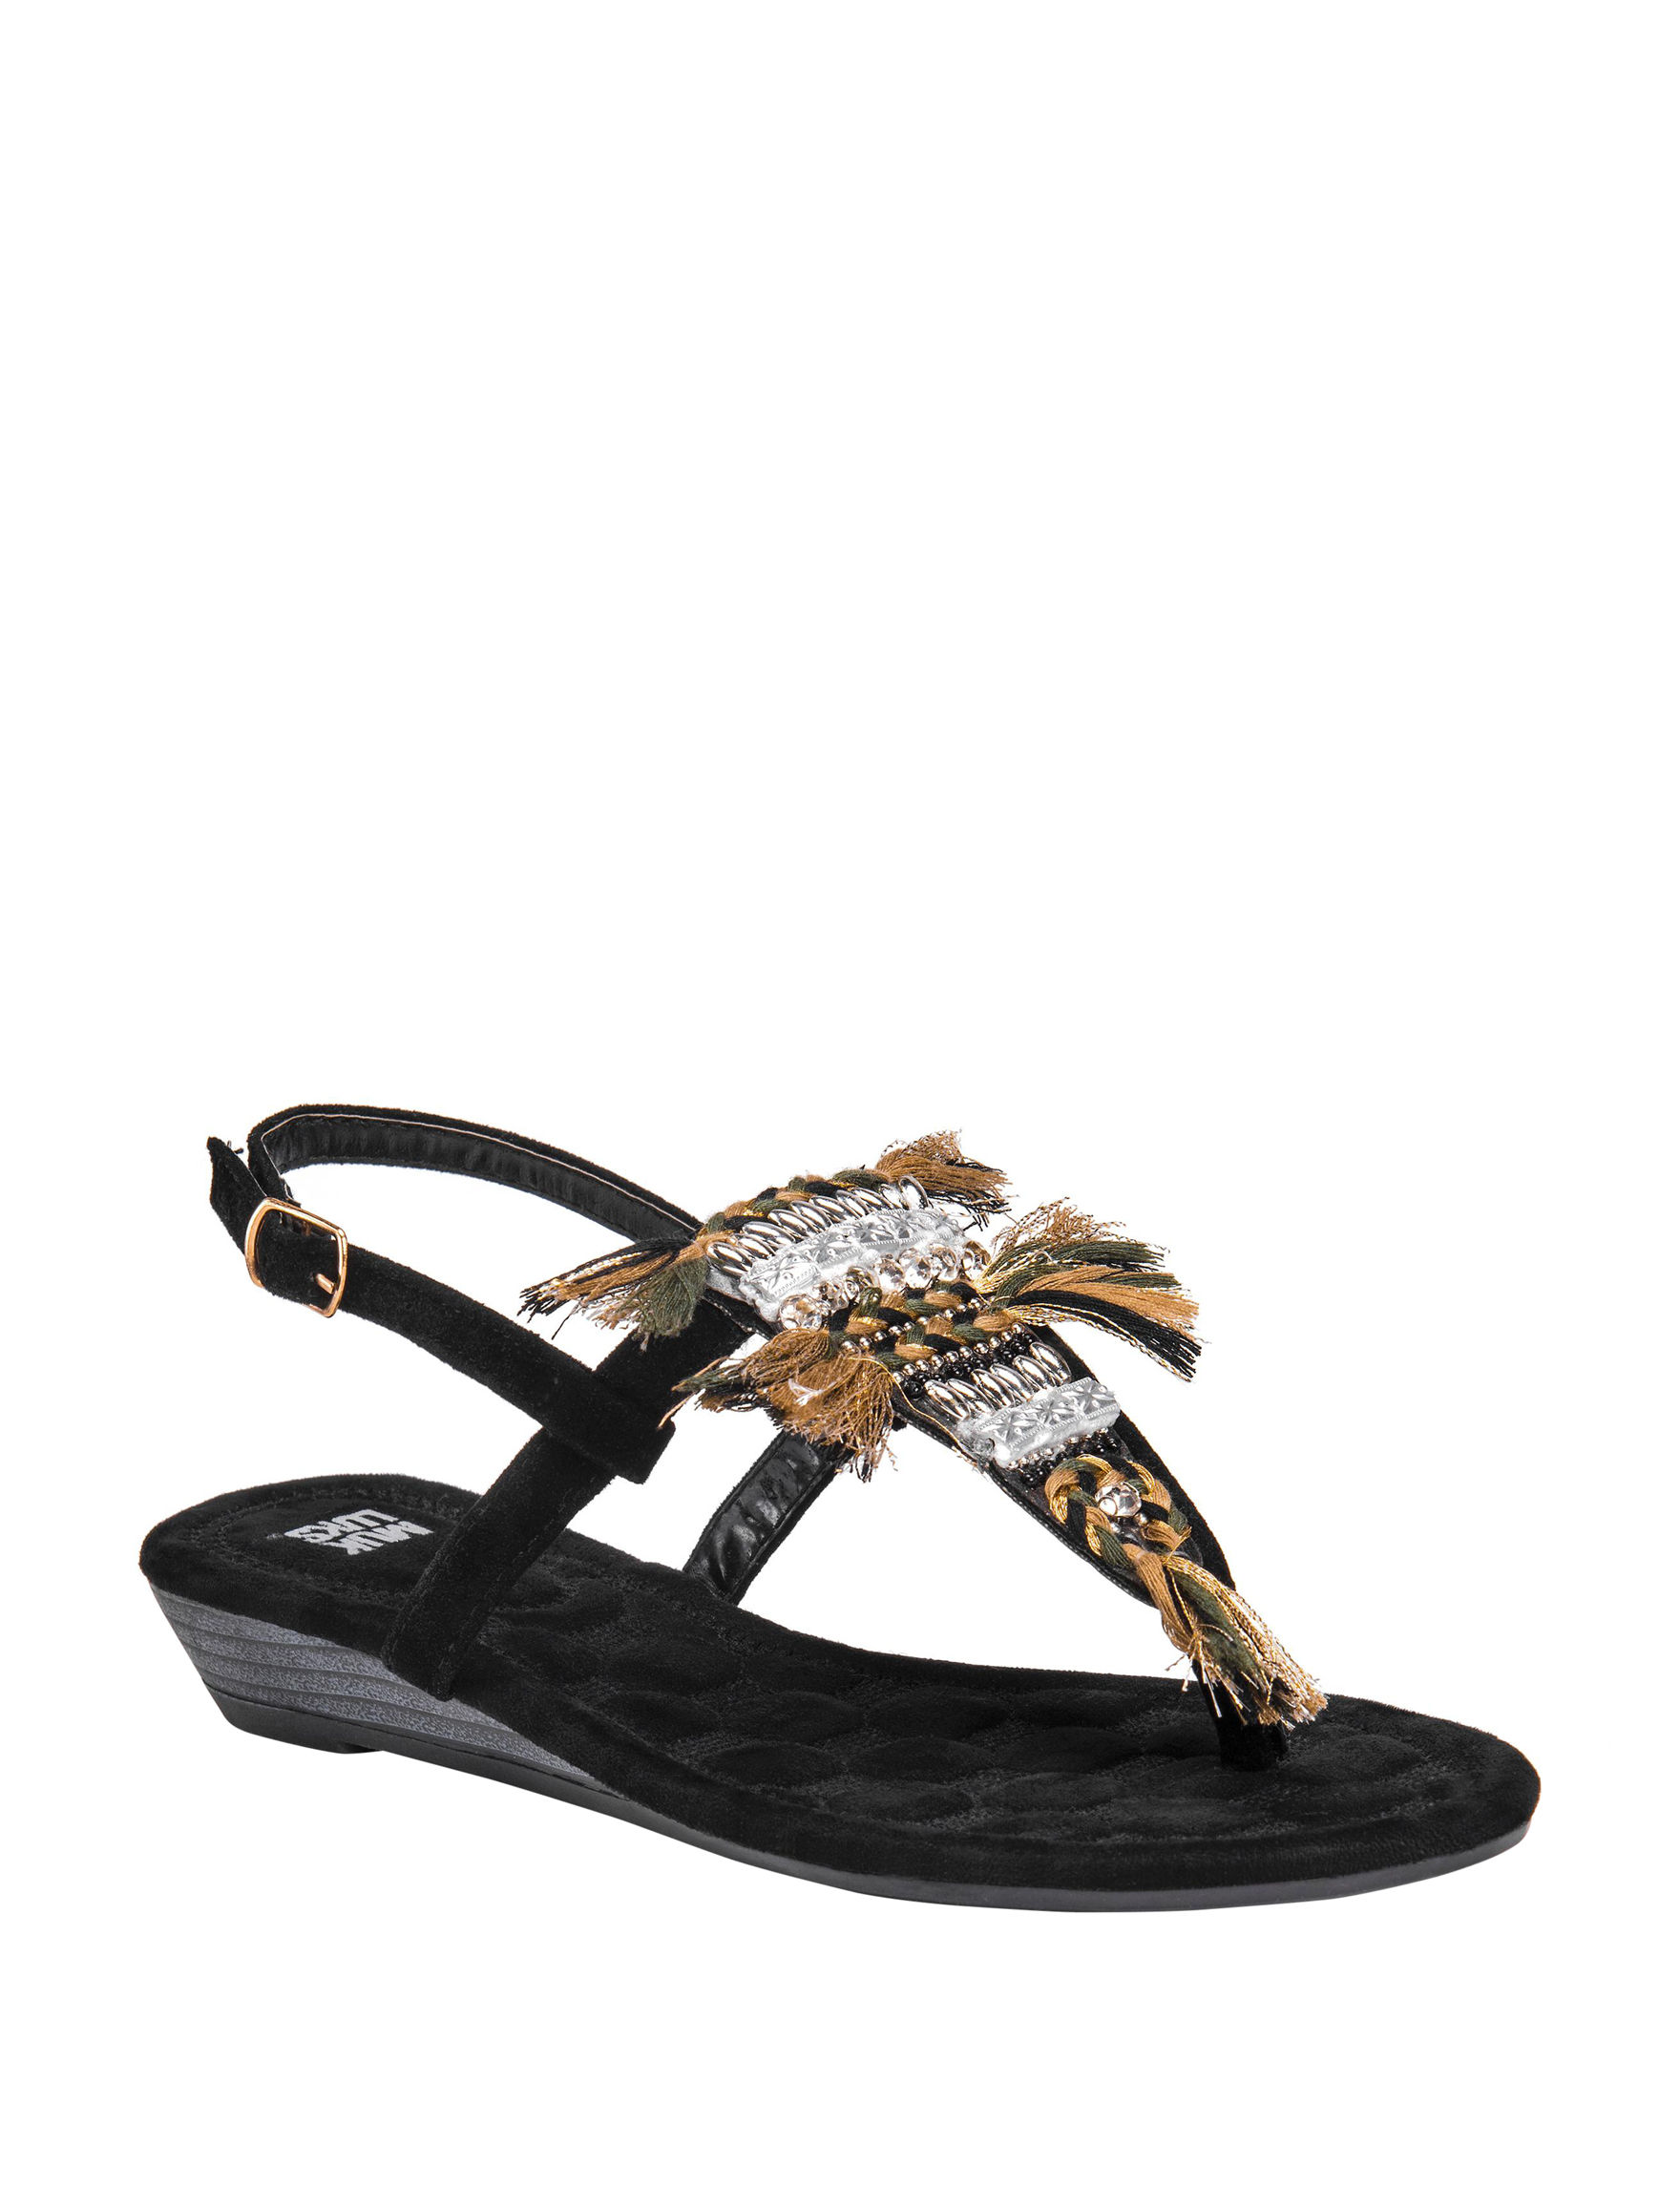 Muk Luks Black Wedge Sandals